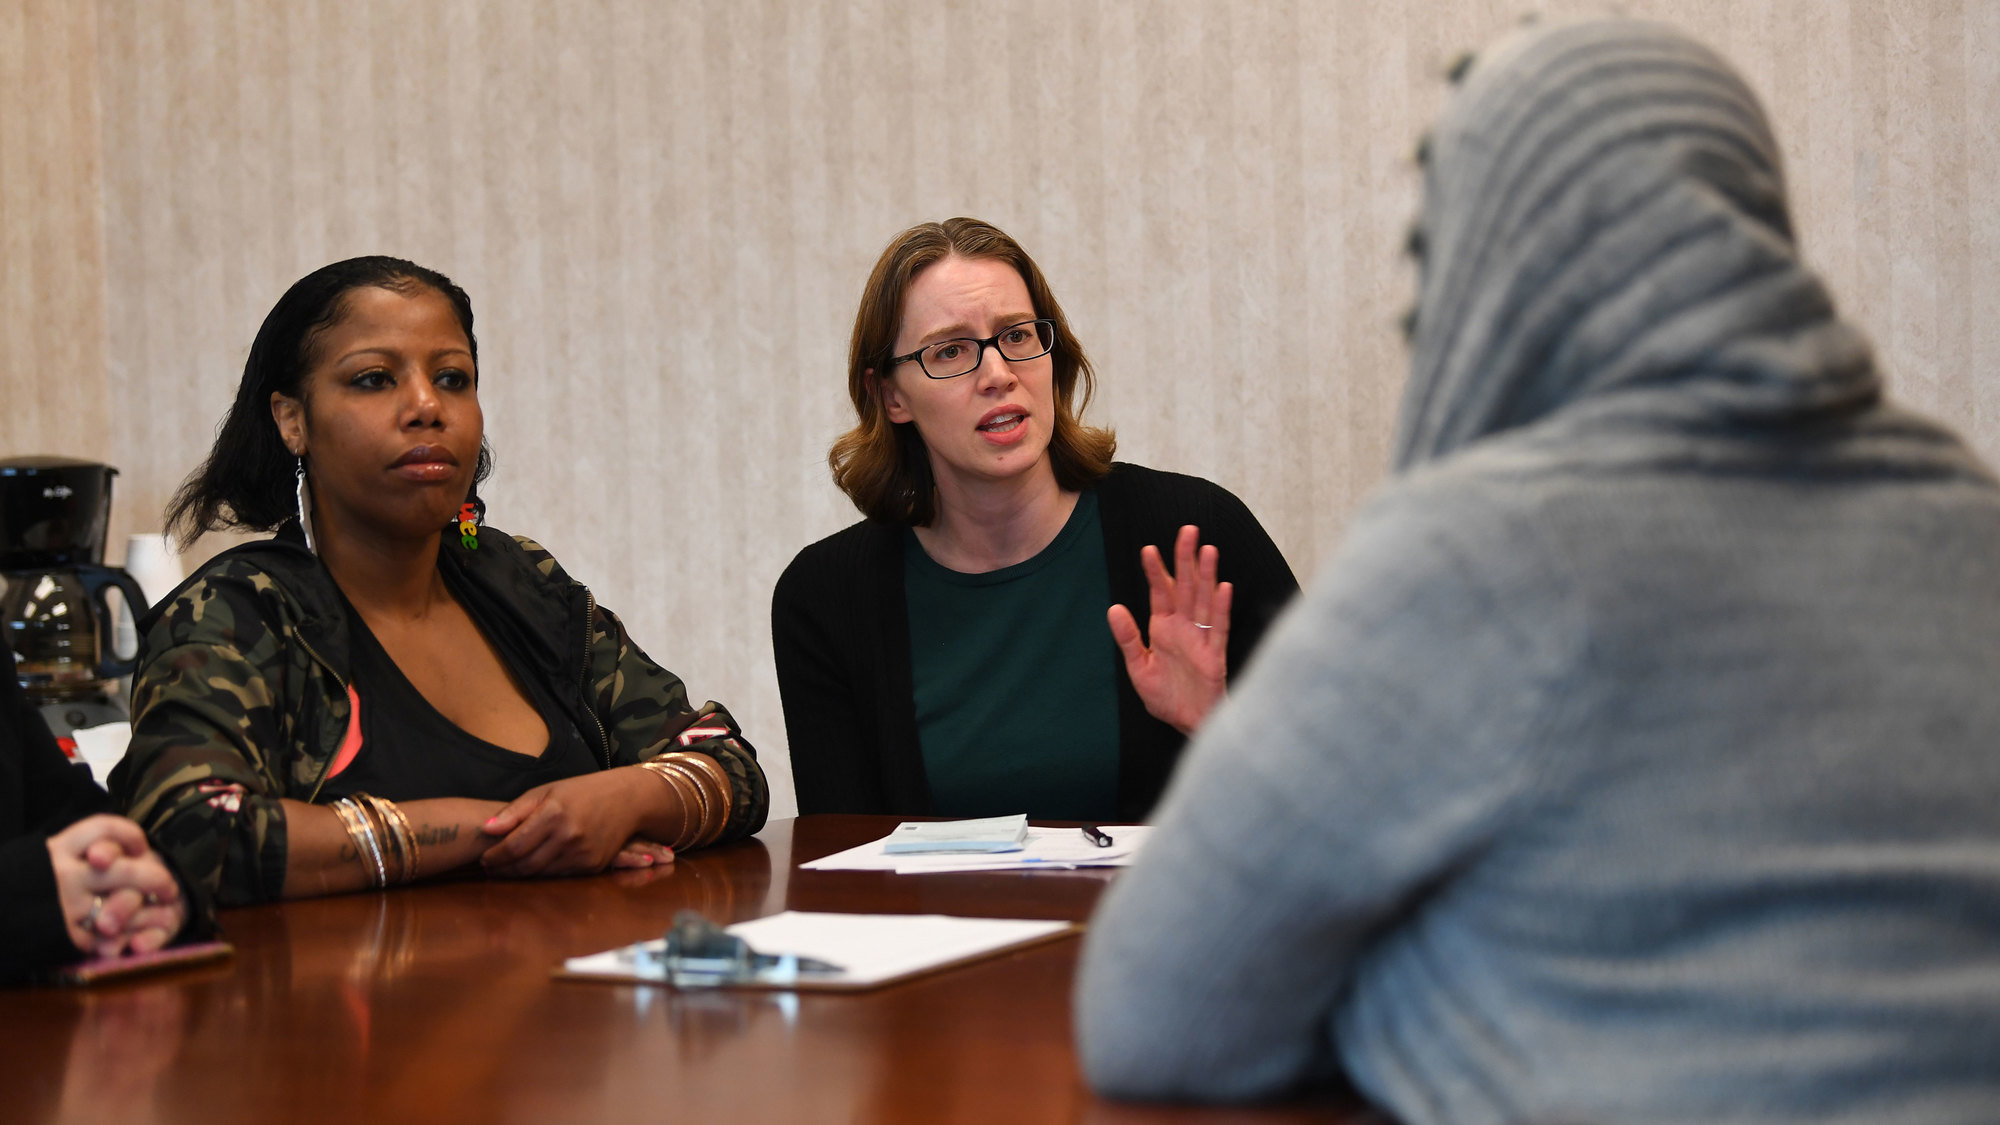 Dr. Erin Zerbo, center, who runs the Newark, N.J., CARE Center (Center for Addiction Resources & Education), talks with a group of patients, including Cydiaa Williams, at left.